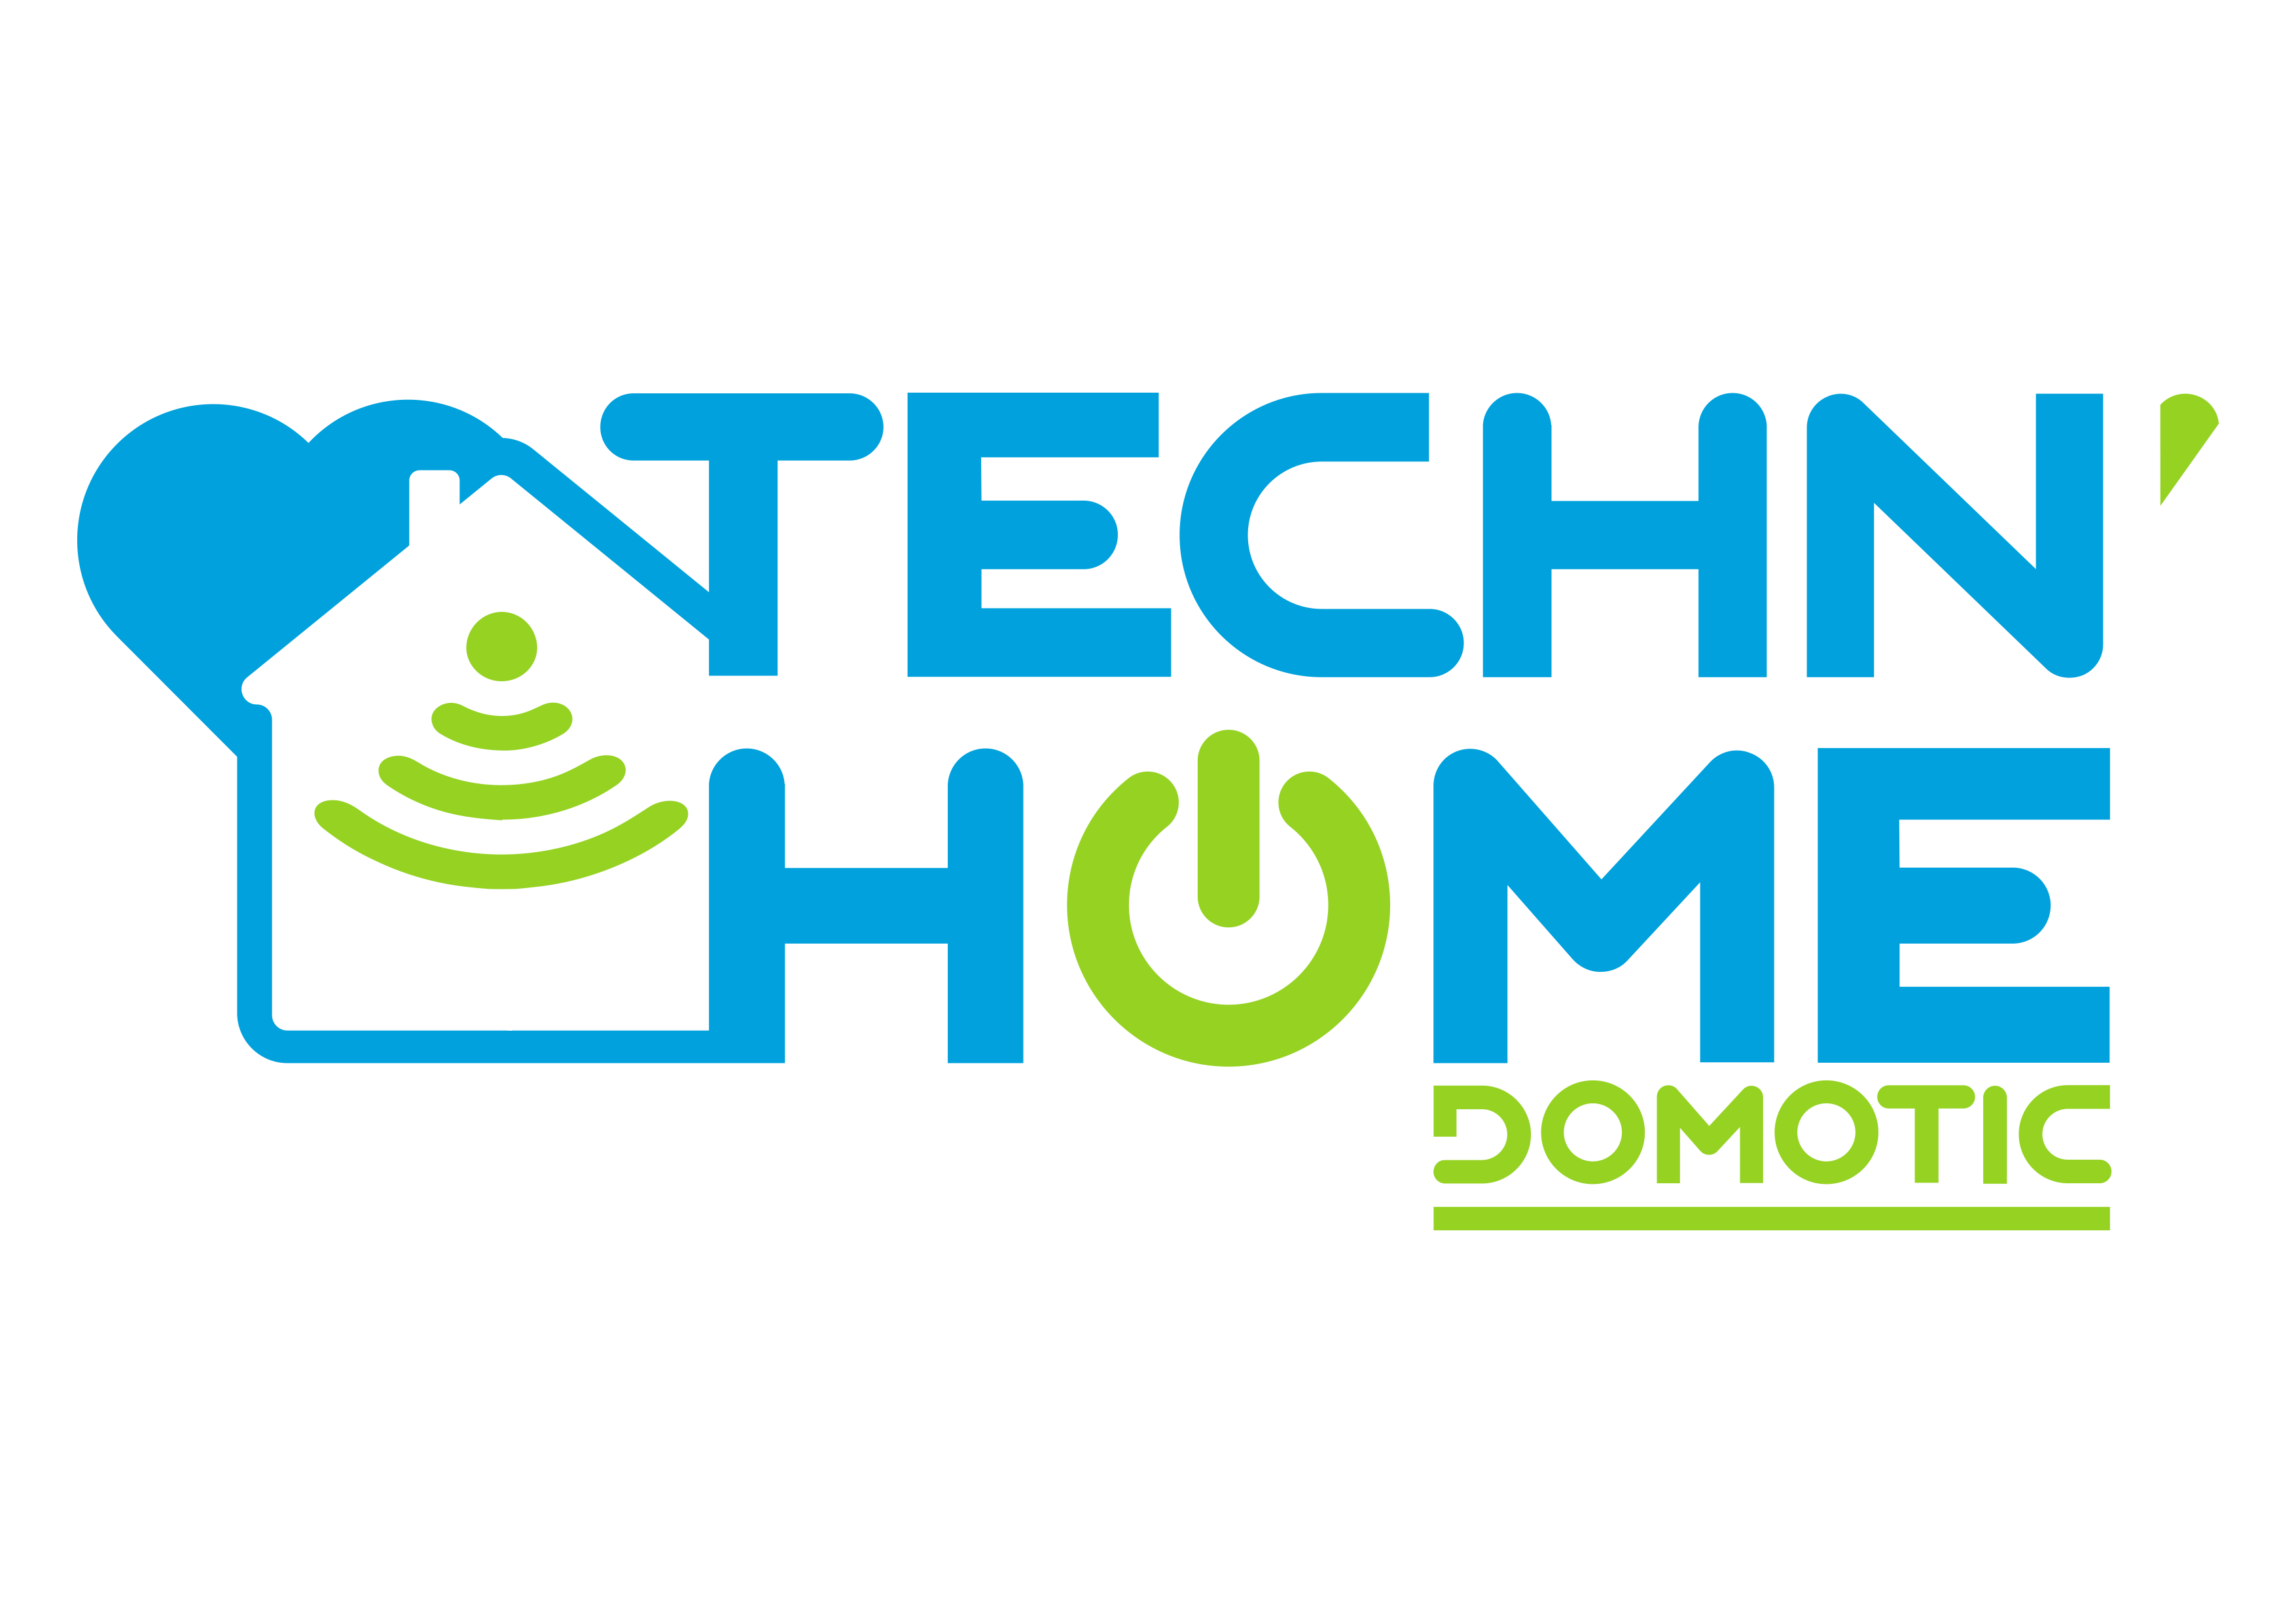 Olivier MAUCHAMP - Techn'Home Domotic